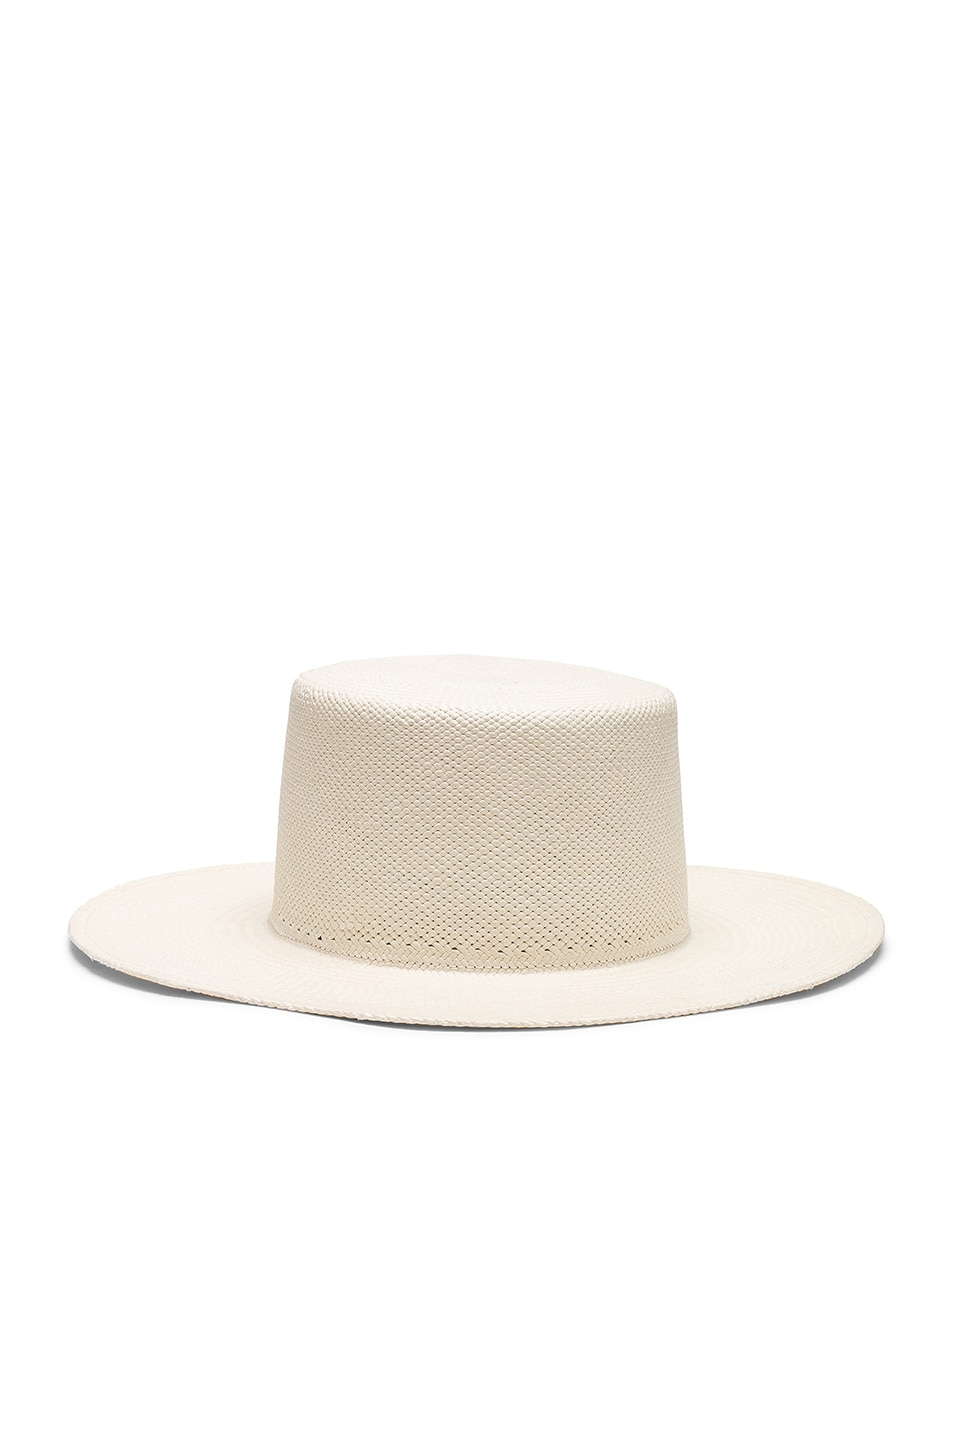 ecdddcaf91a Image 1 of Janessa Leone Camie Hat in White